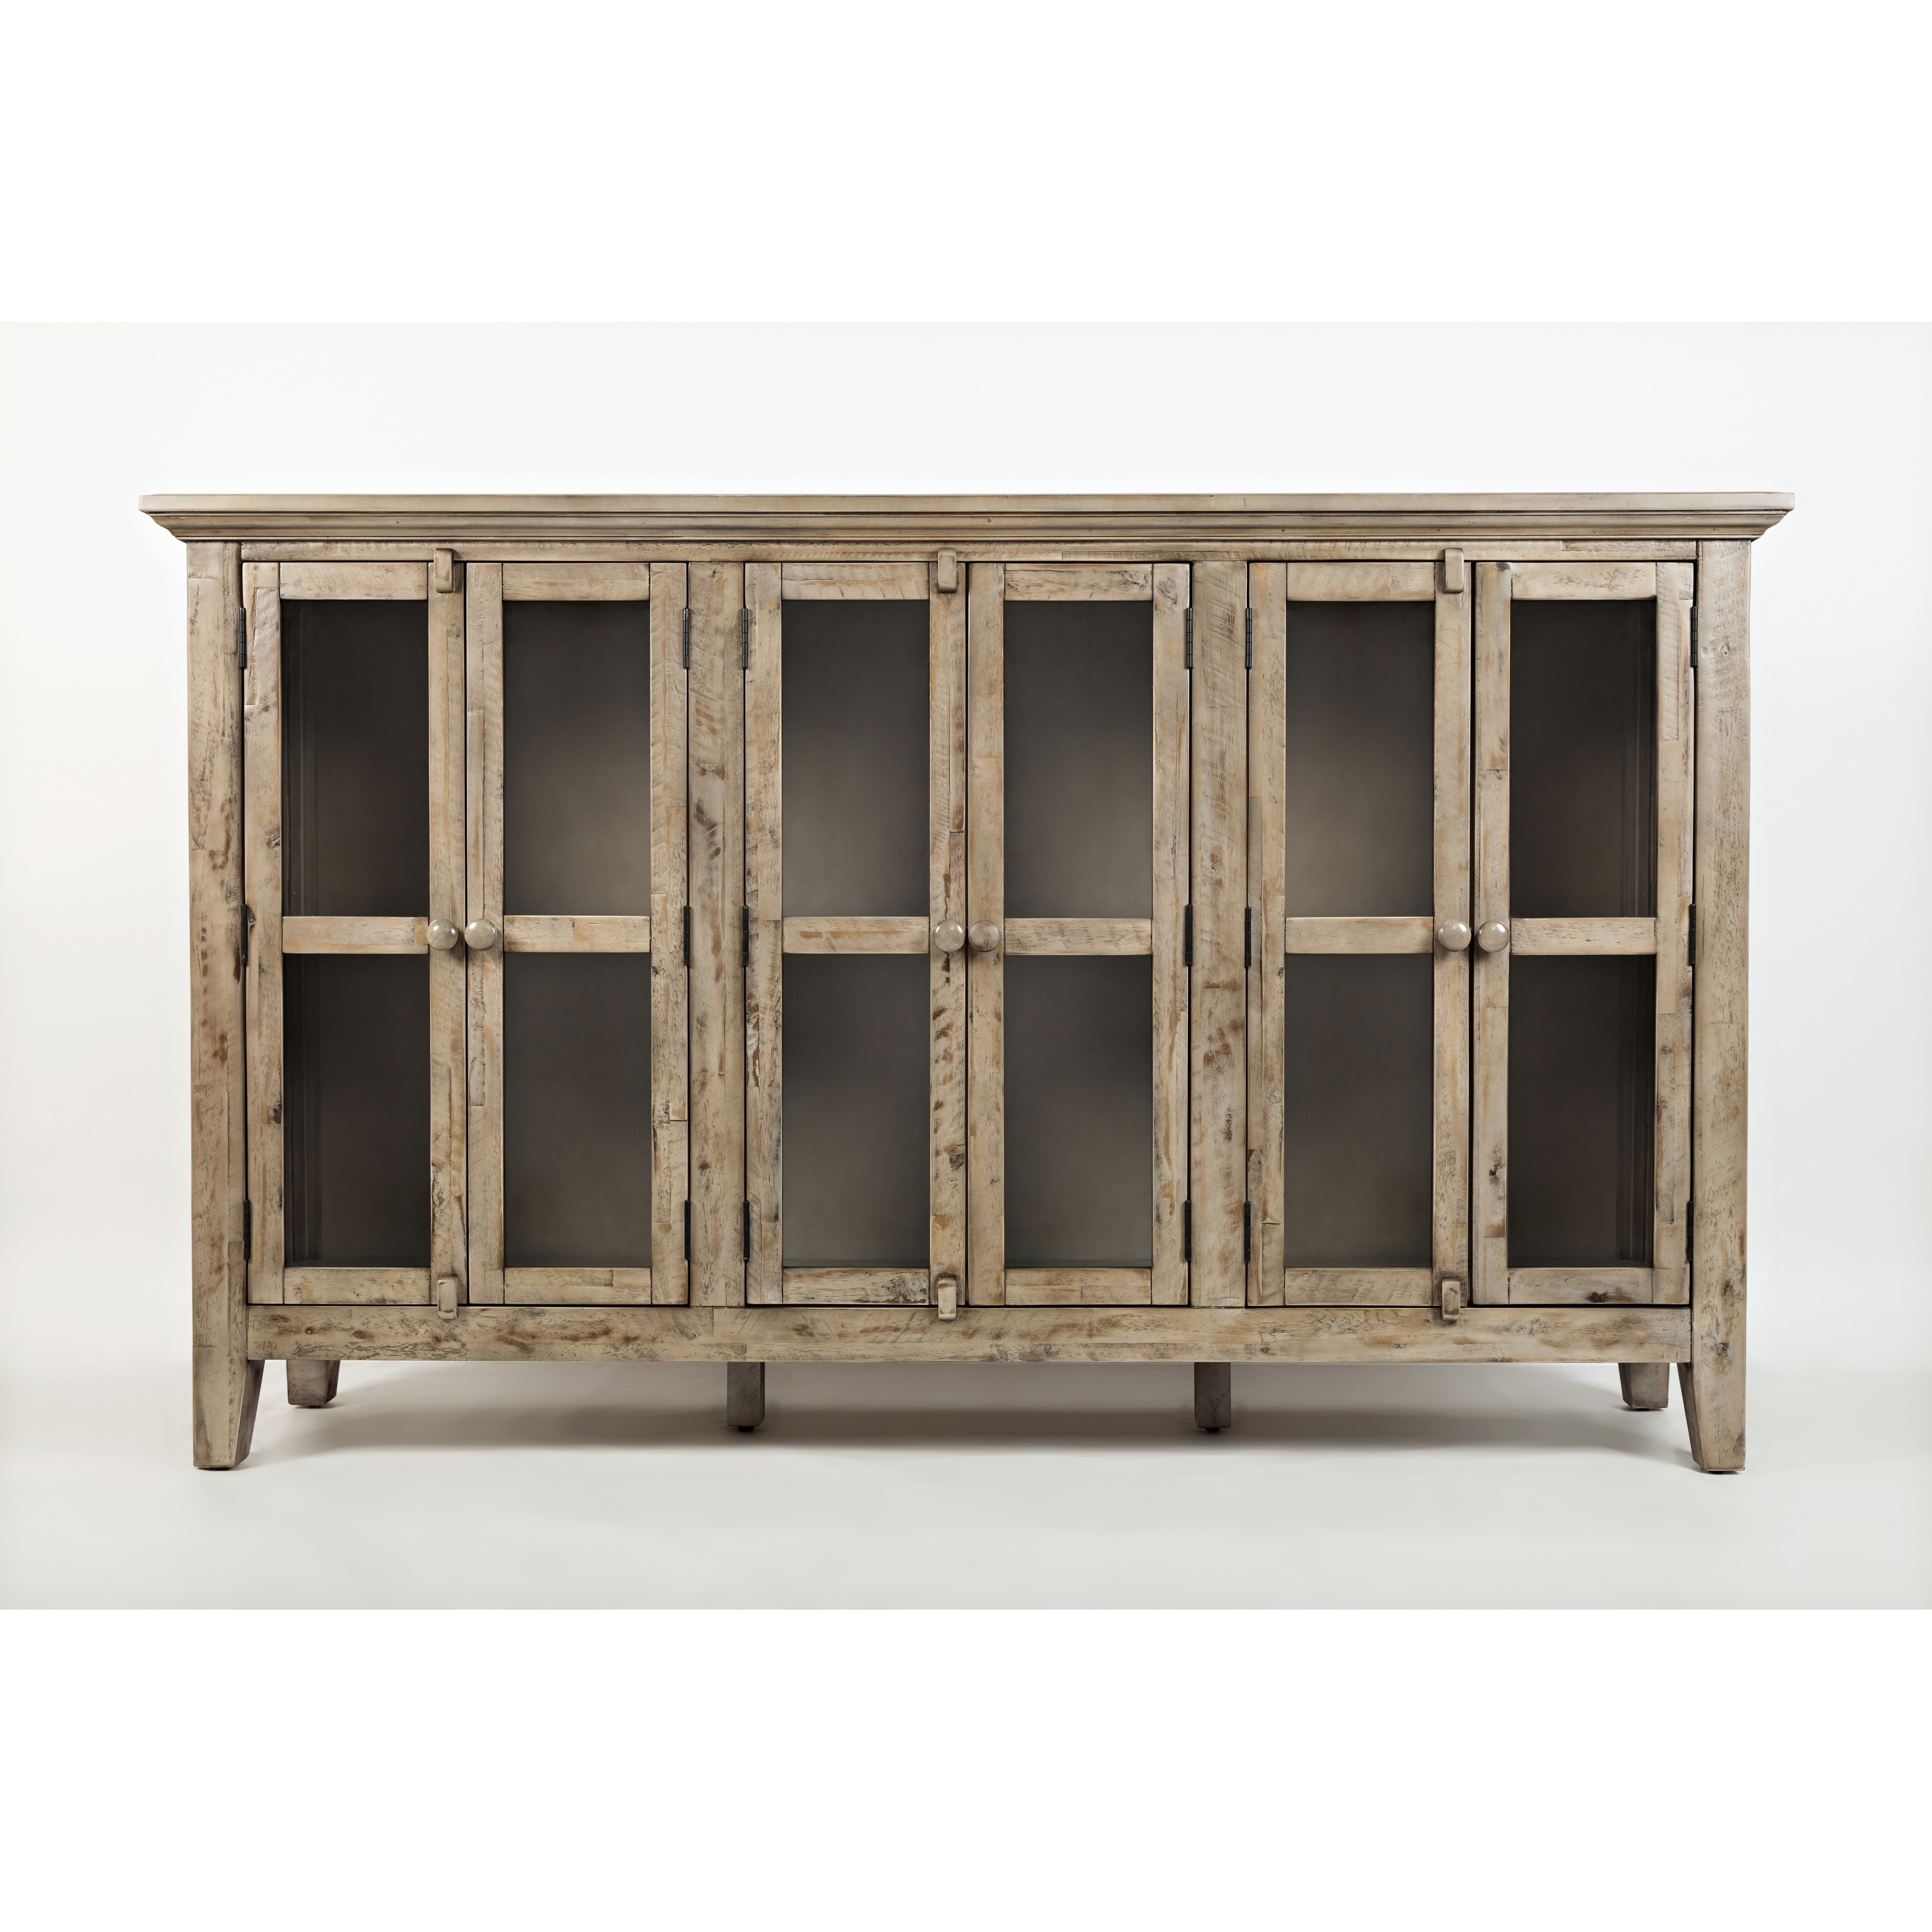 Newest Eau Claire 6 Door Accent Cabinets Inside Wooden Accent Cabinet With 6 Glass Doors, Weathered Gray (View 16 of 20)